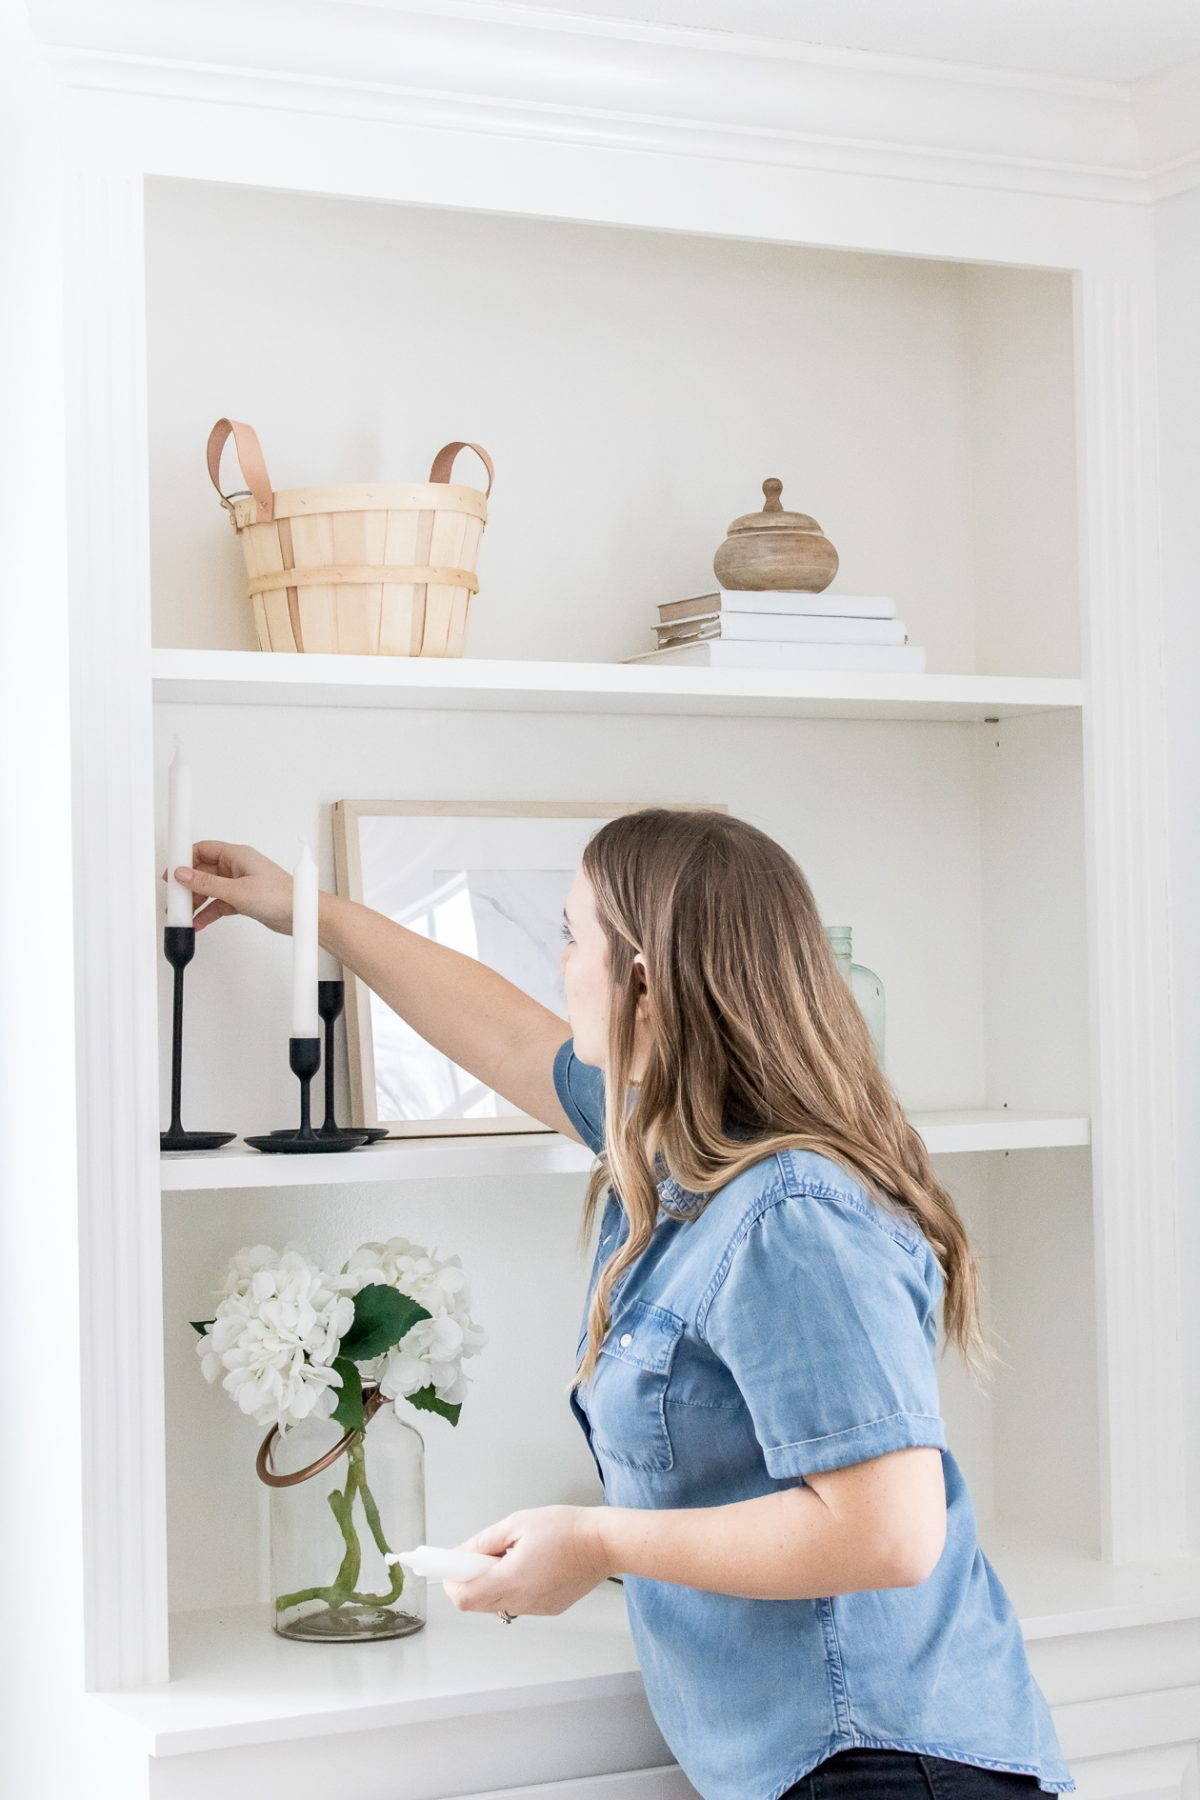 Woman in chambray shirt decorating built in shelves with black candle stick holders